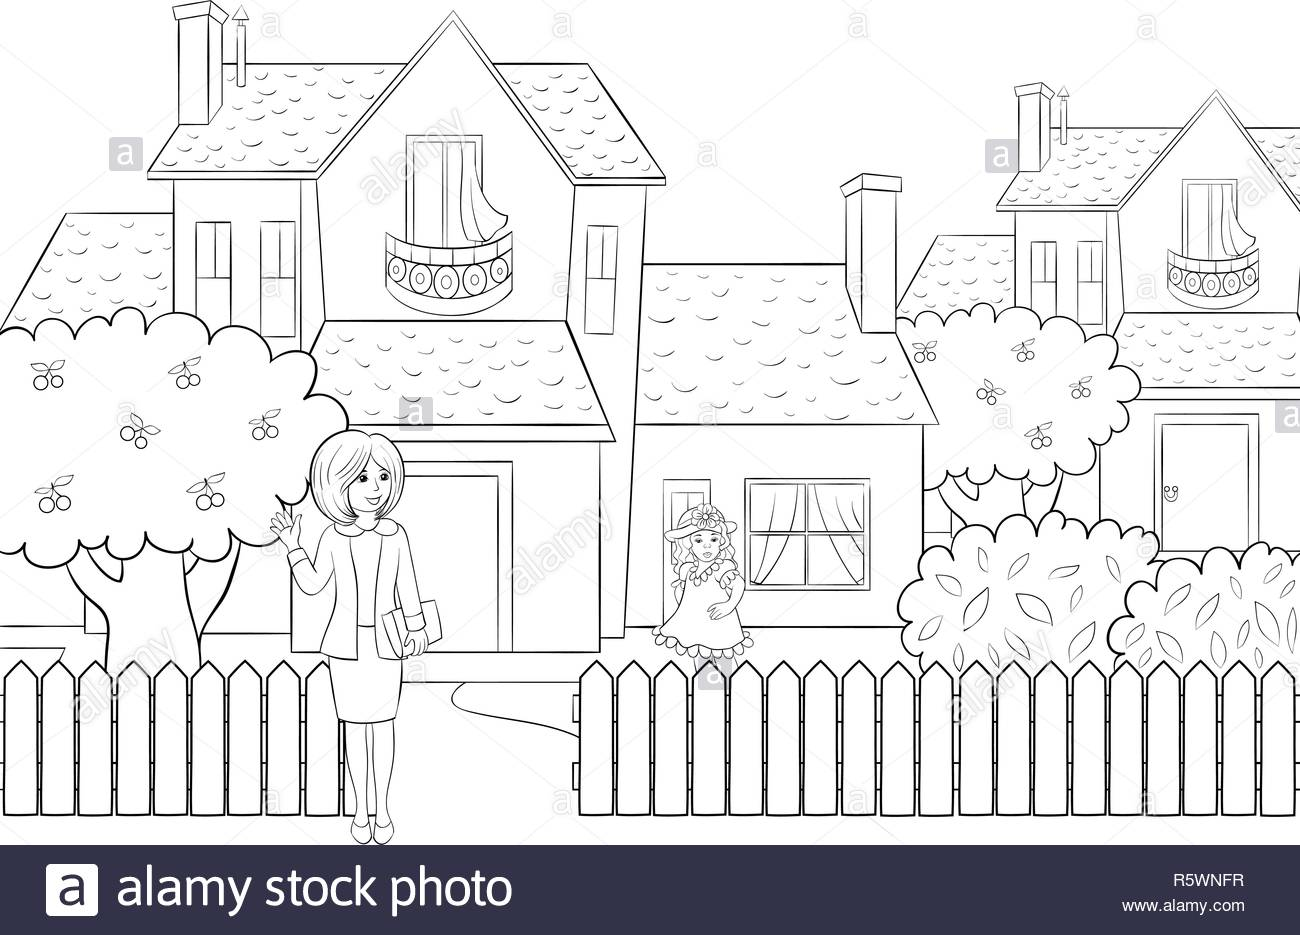 A cute teacher and little girl in front of house with trees,bushes and fence image for children.Line art style illustration for relaxing activity.Post - Stock Vector